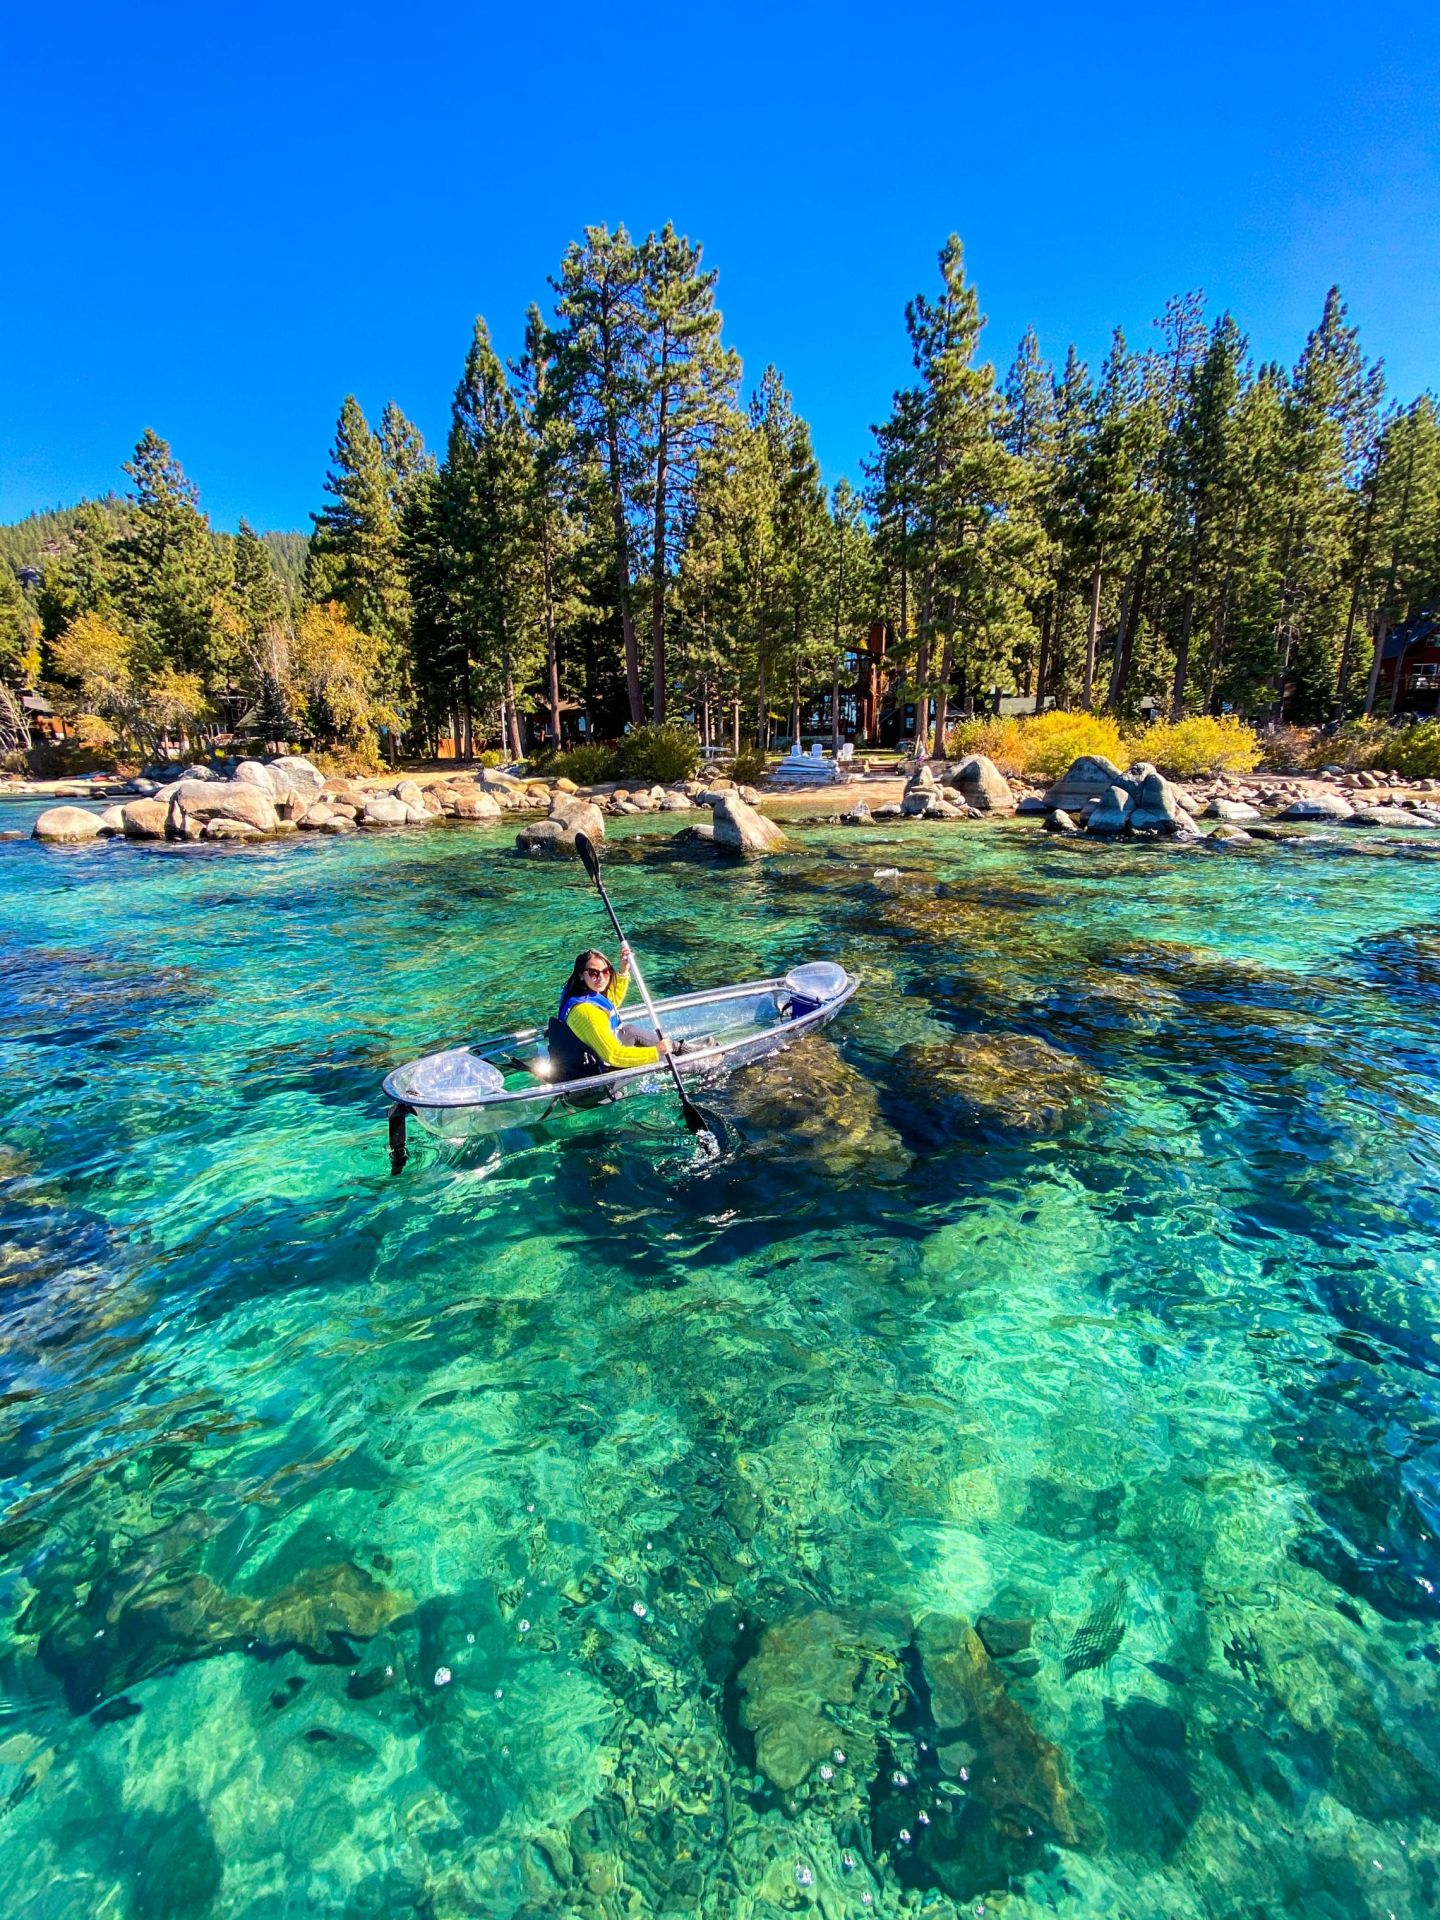 The color of Lake Tahoe is so blue!